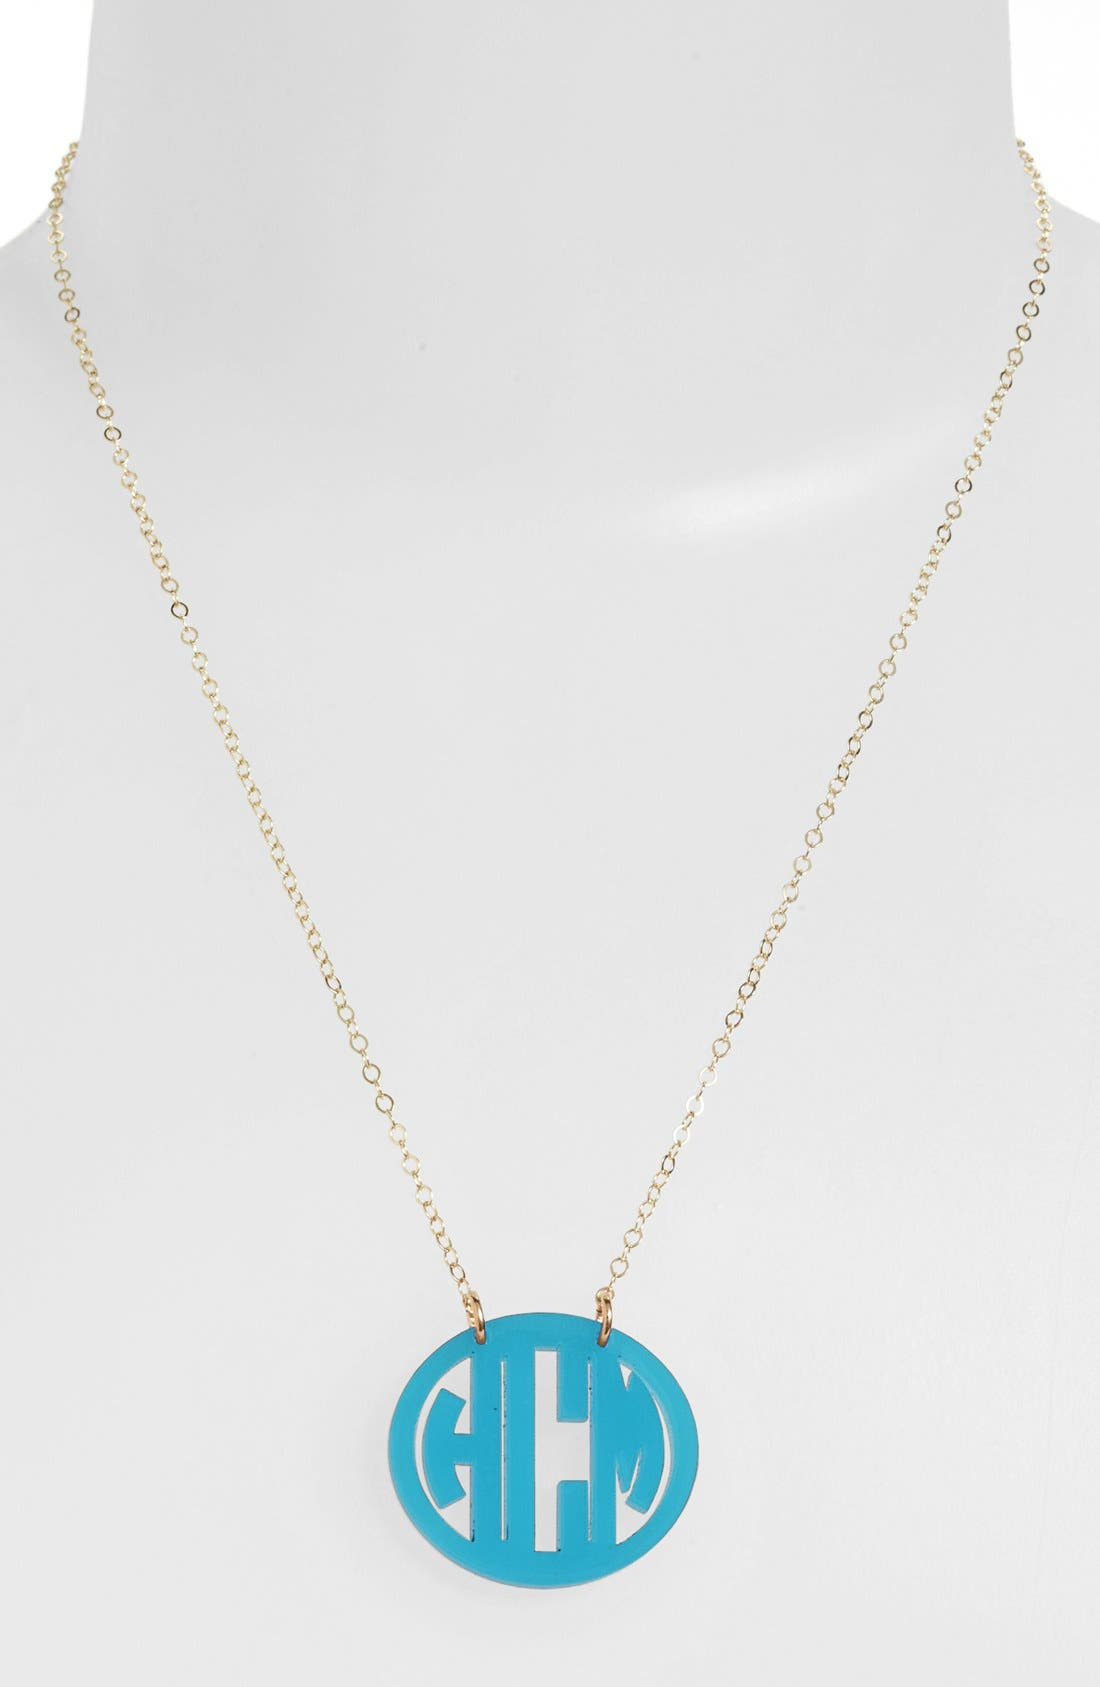 Small Personalized Monogram Pendant Necklace,                         Main,                         color, TURQUOISE/ GOLD